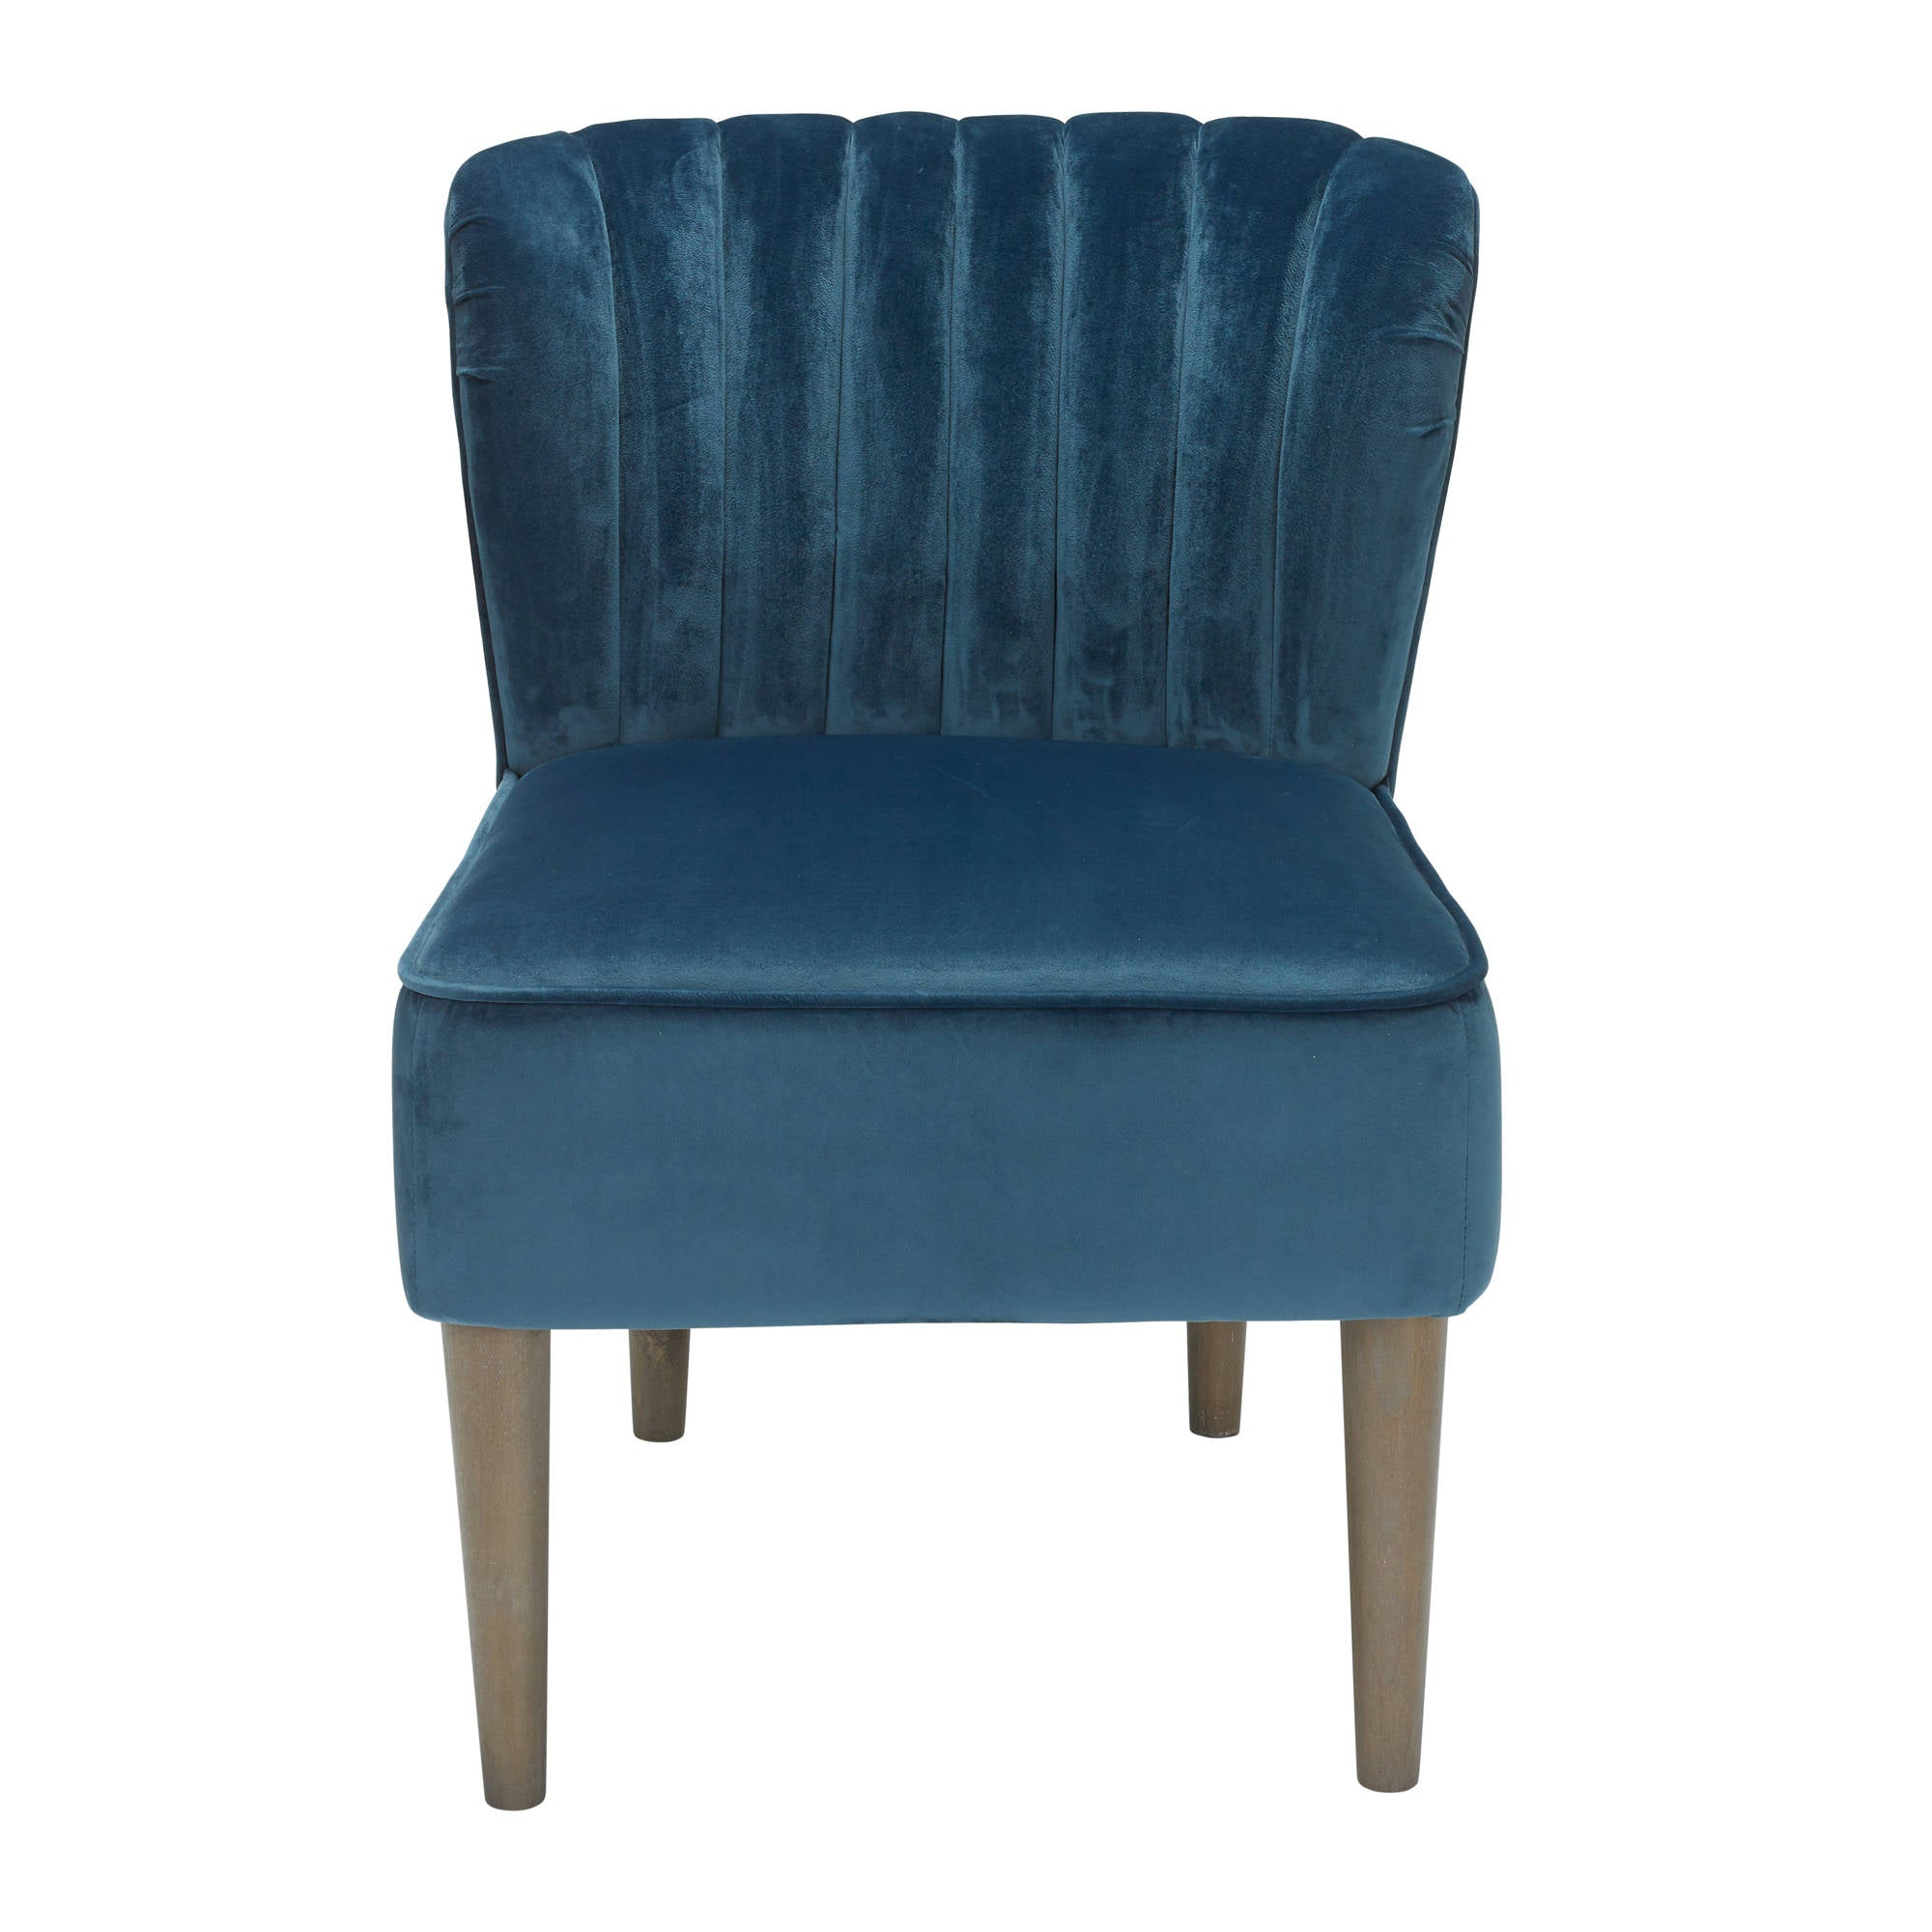 Belita Chair in Midnight Blue - Ezzo